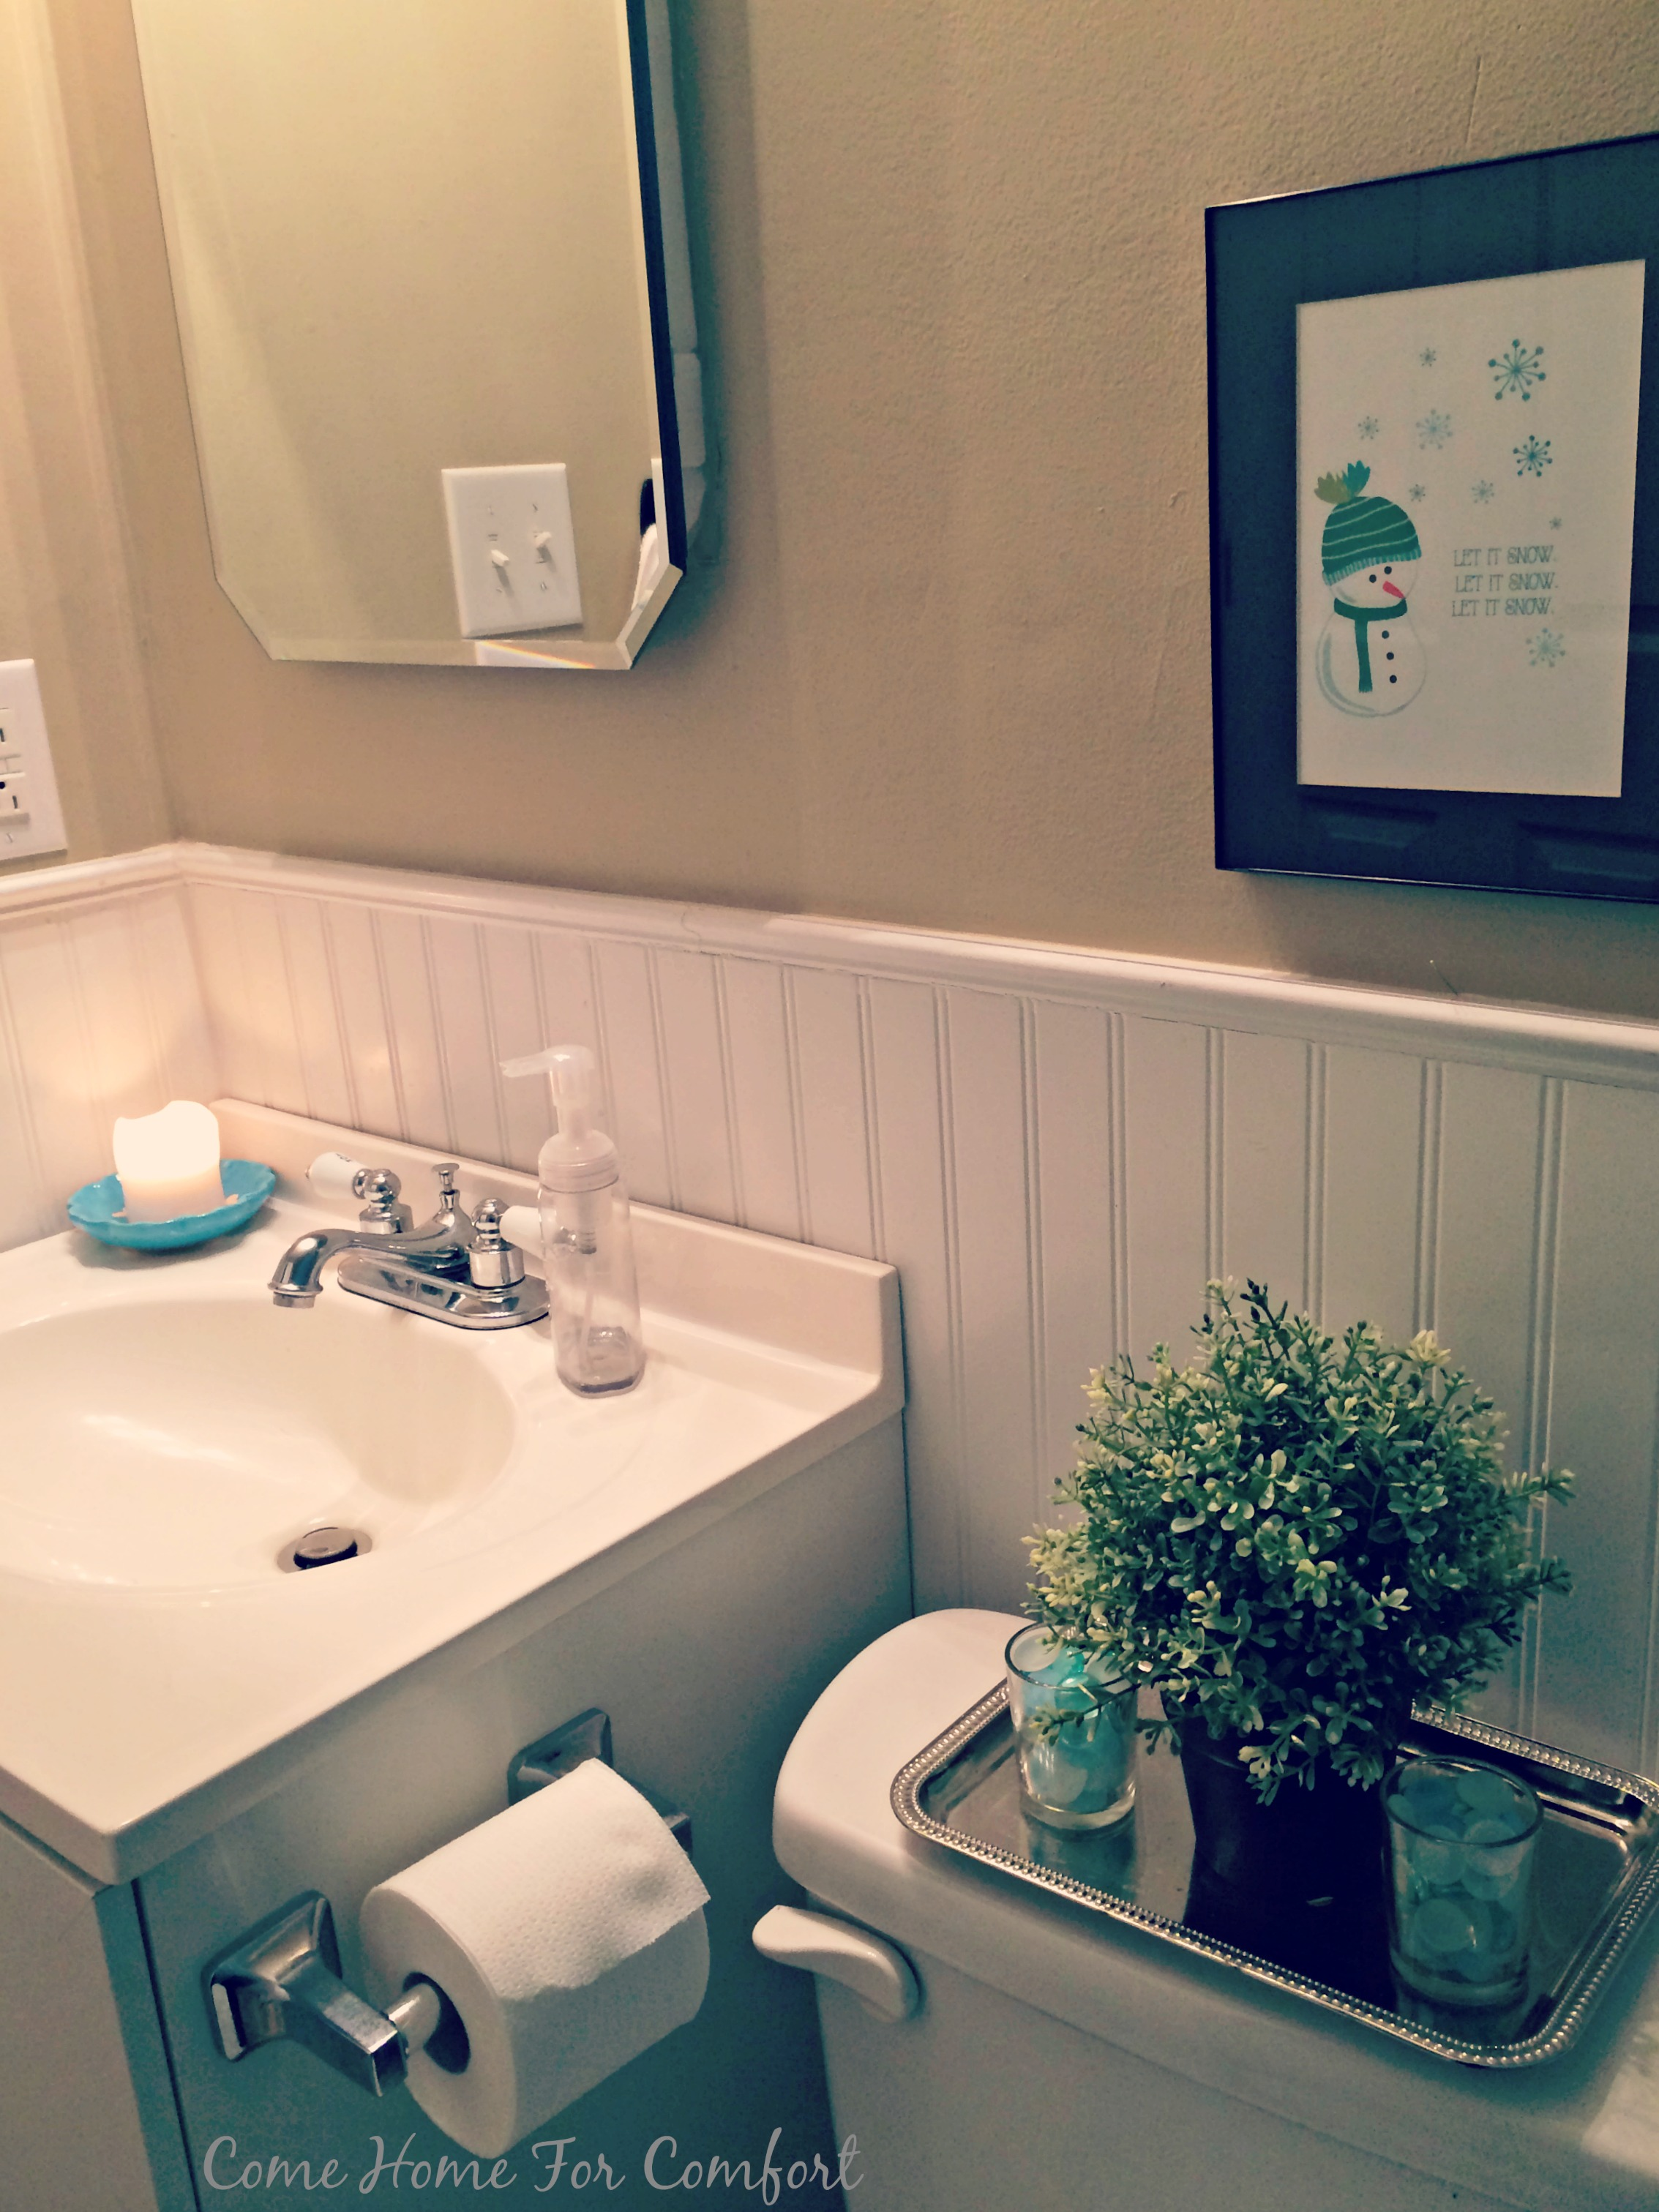 Winter Decor For The Bathroom – Come Home For Comfort